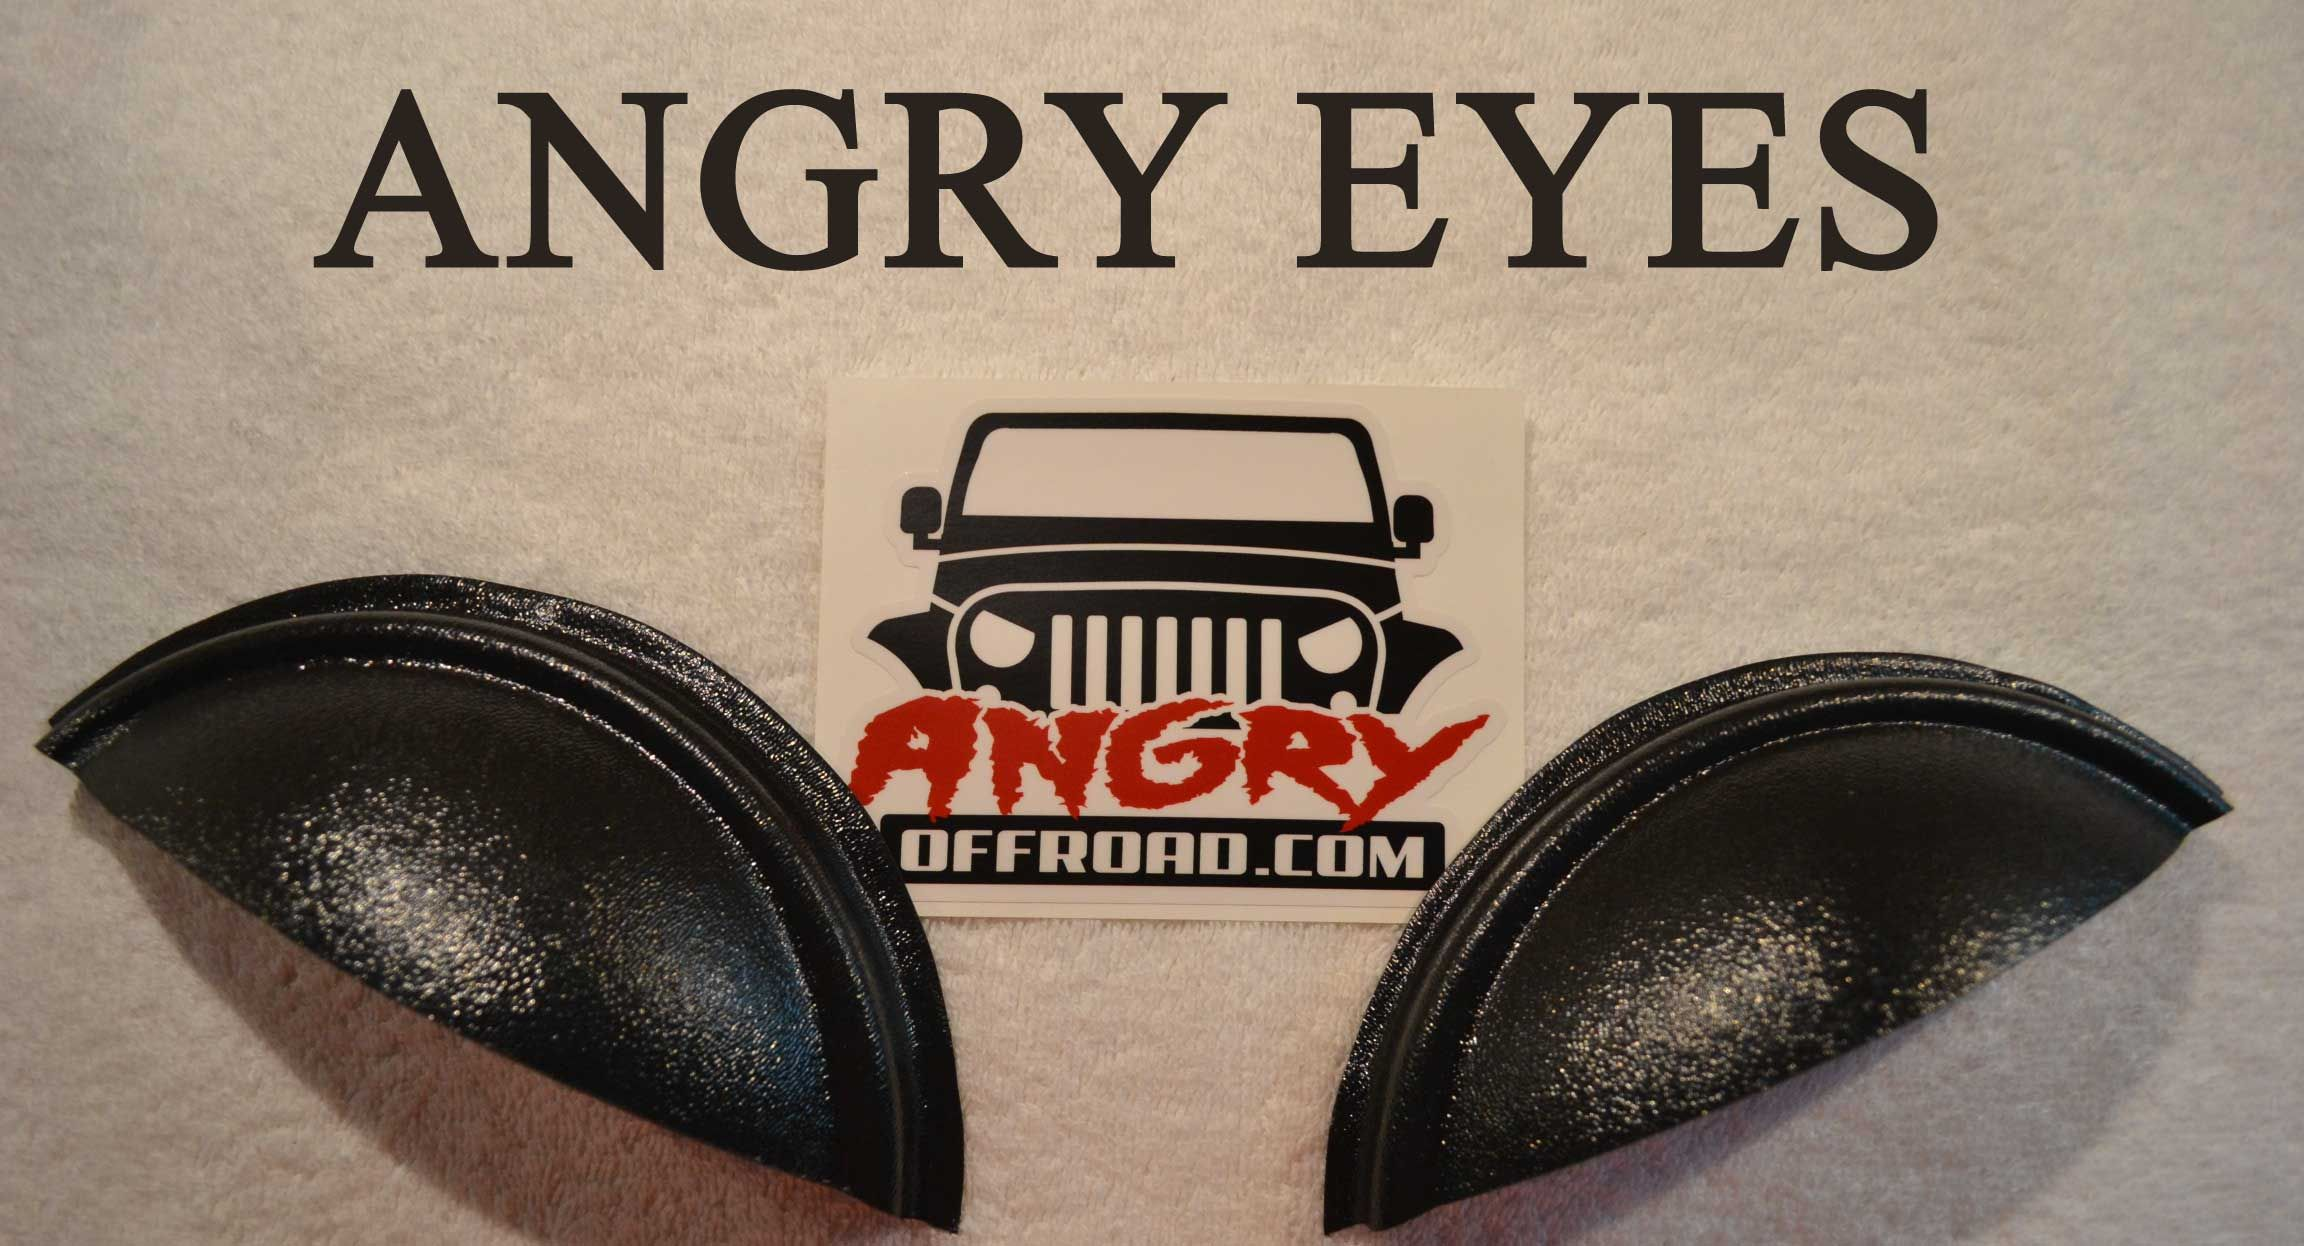 Angry Eyes Jeep Headlight Covers, Angry Eyes, Half Moon